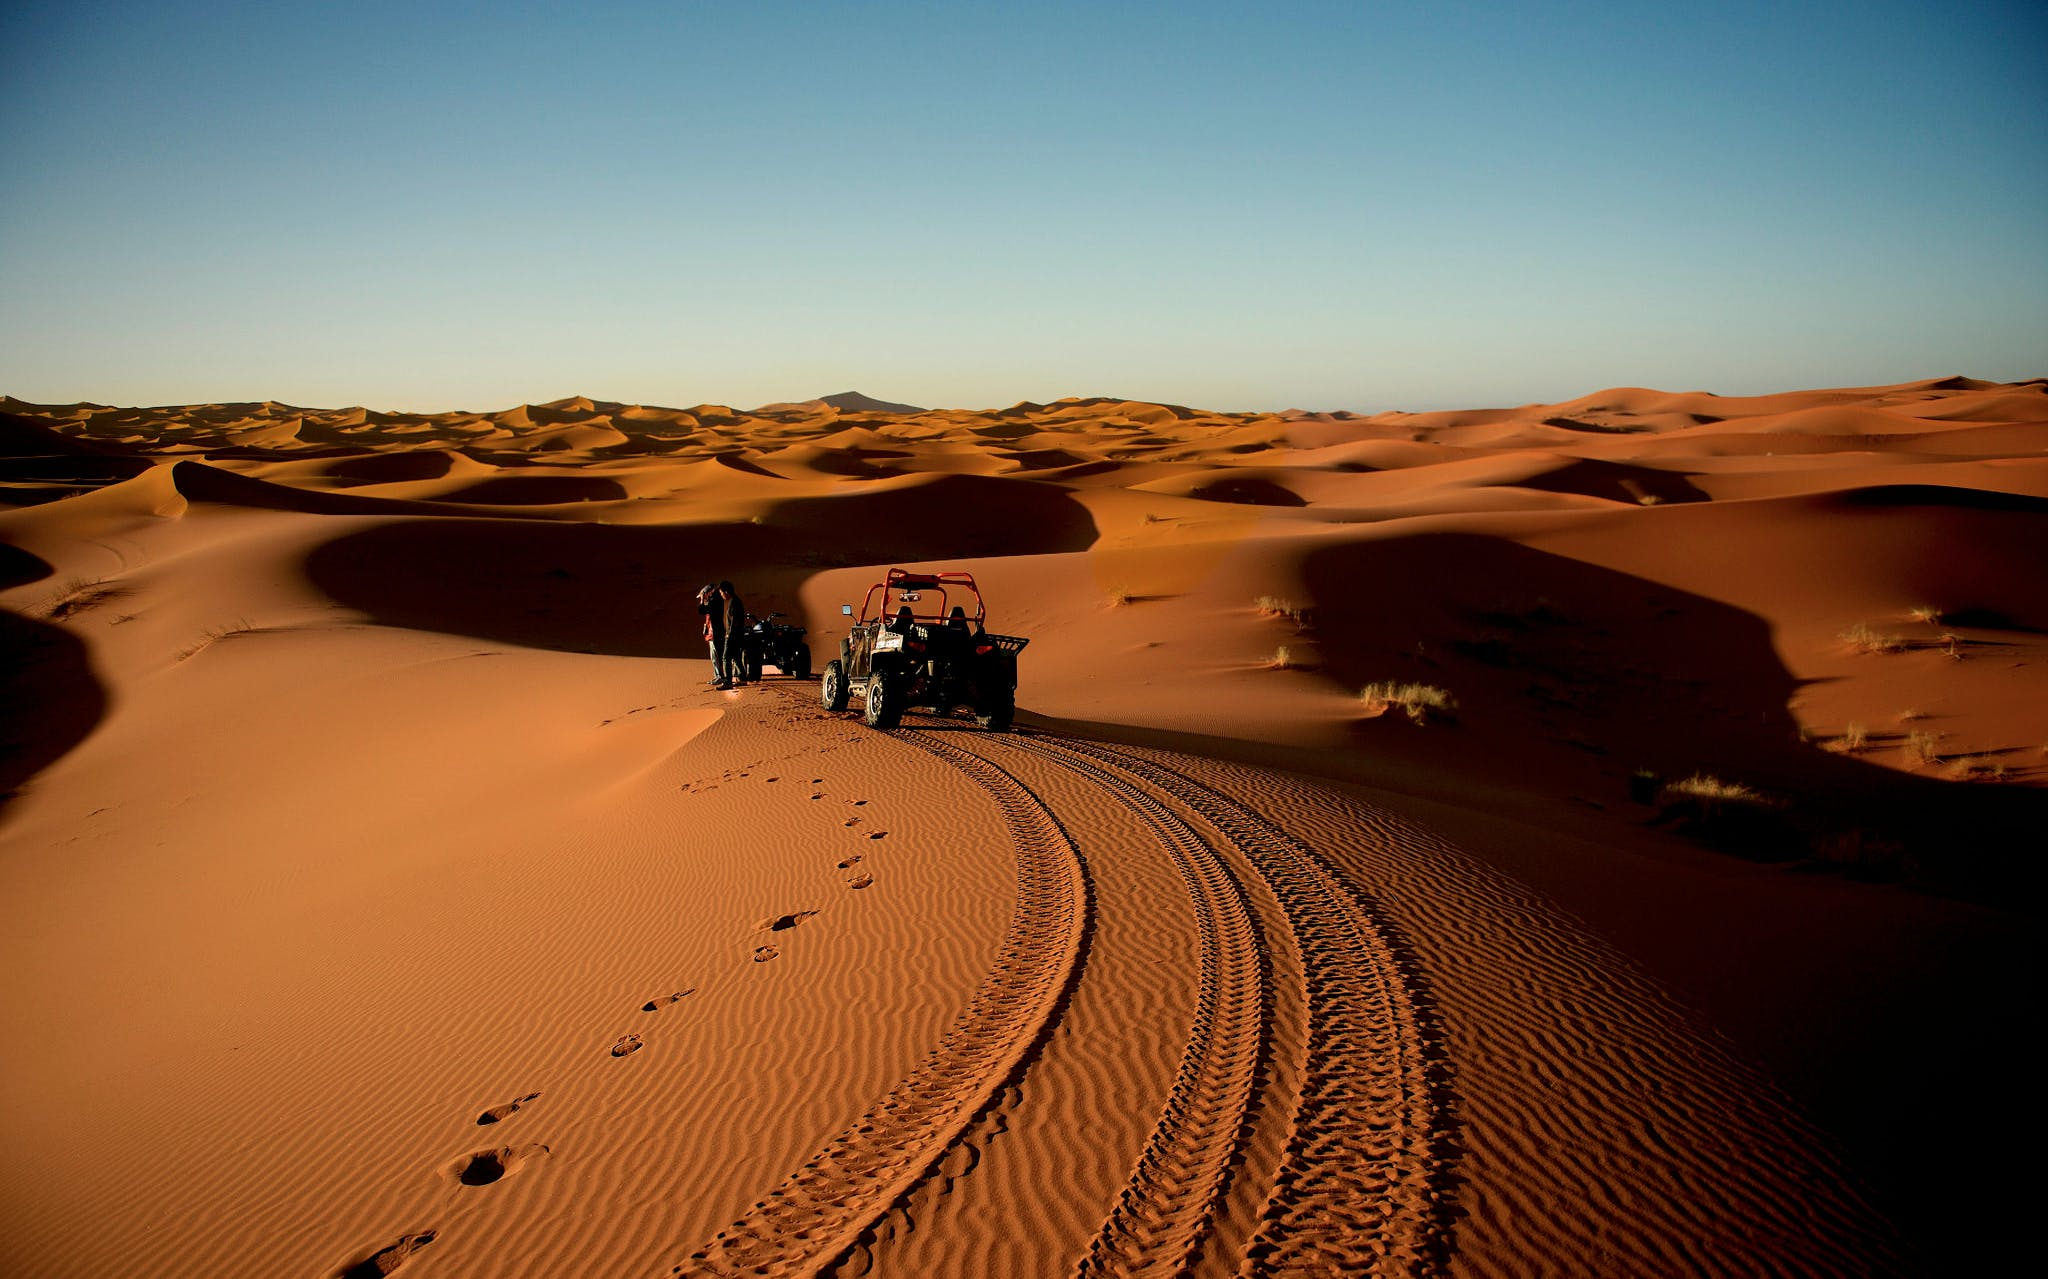 Evening Dune Buggy Safari + BBQ Dinner + Live Entertainment